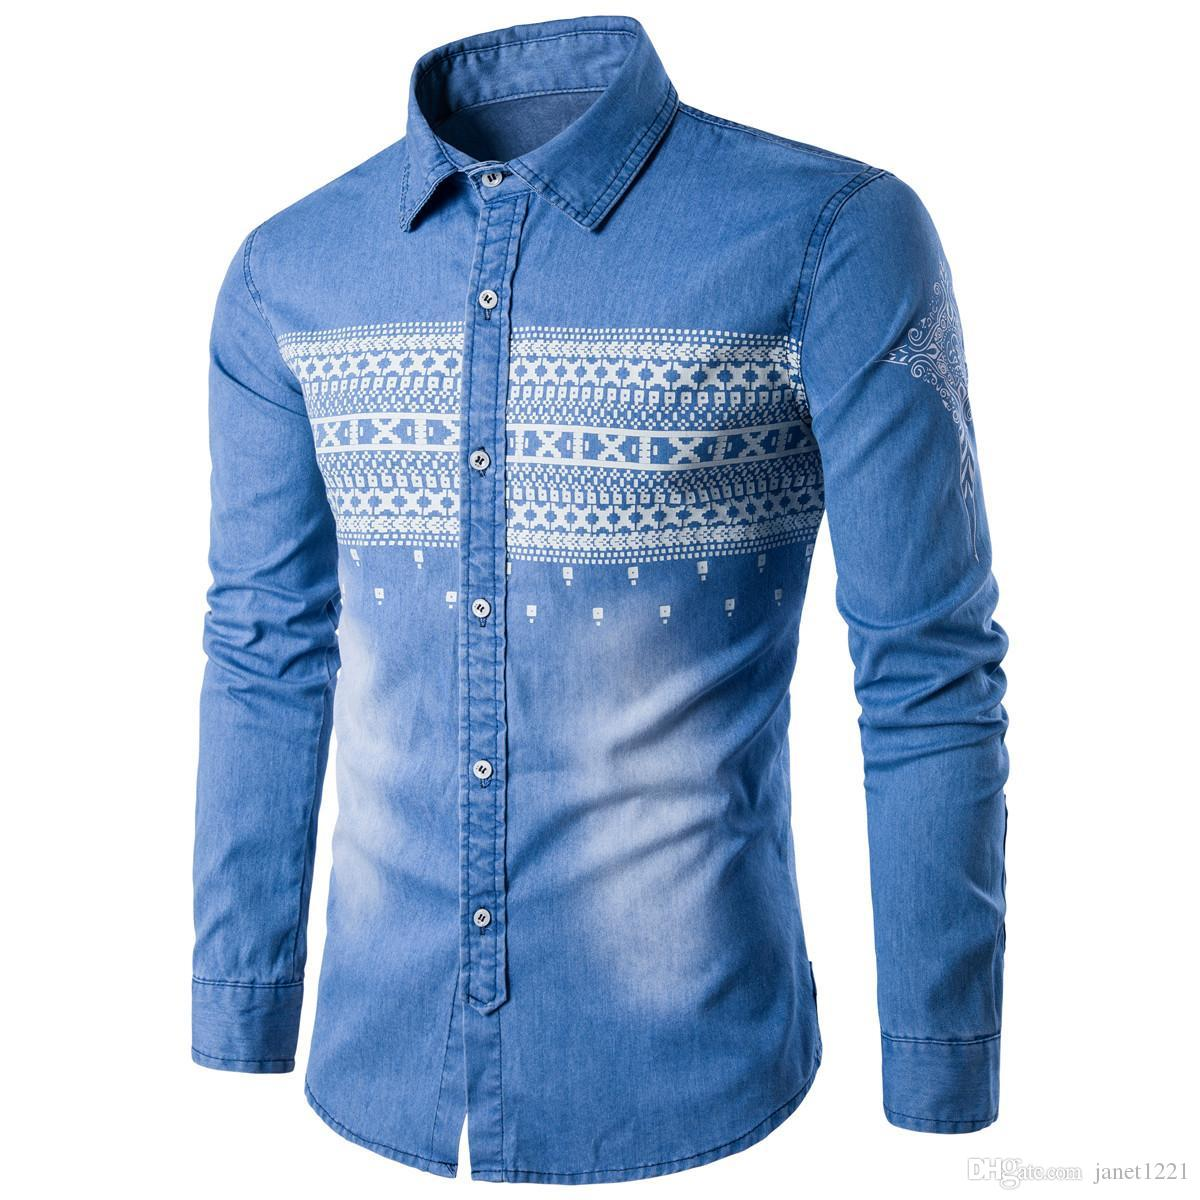 8a86bd3ee2 2019 Blue Polo Shirt Men Long Sleeve Autumn Men Jeans Casual Shirts Plus  Size Printing Personalize Men Denim Jeans Shirts T170701 From Janet1221